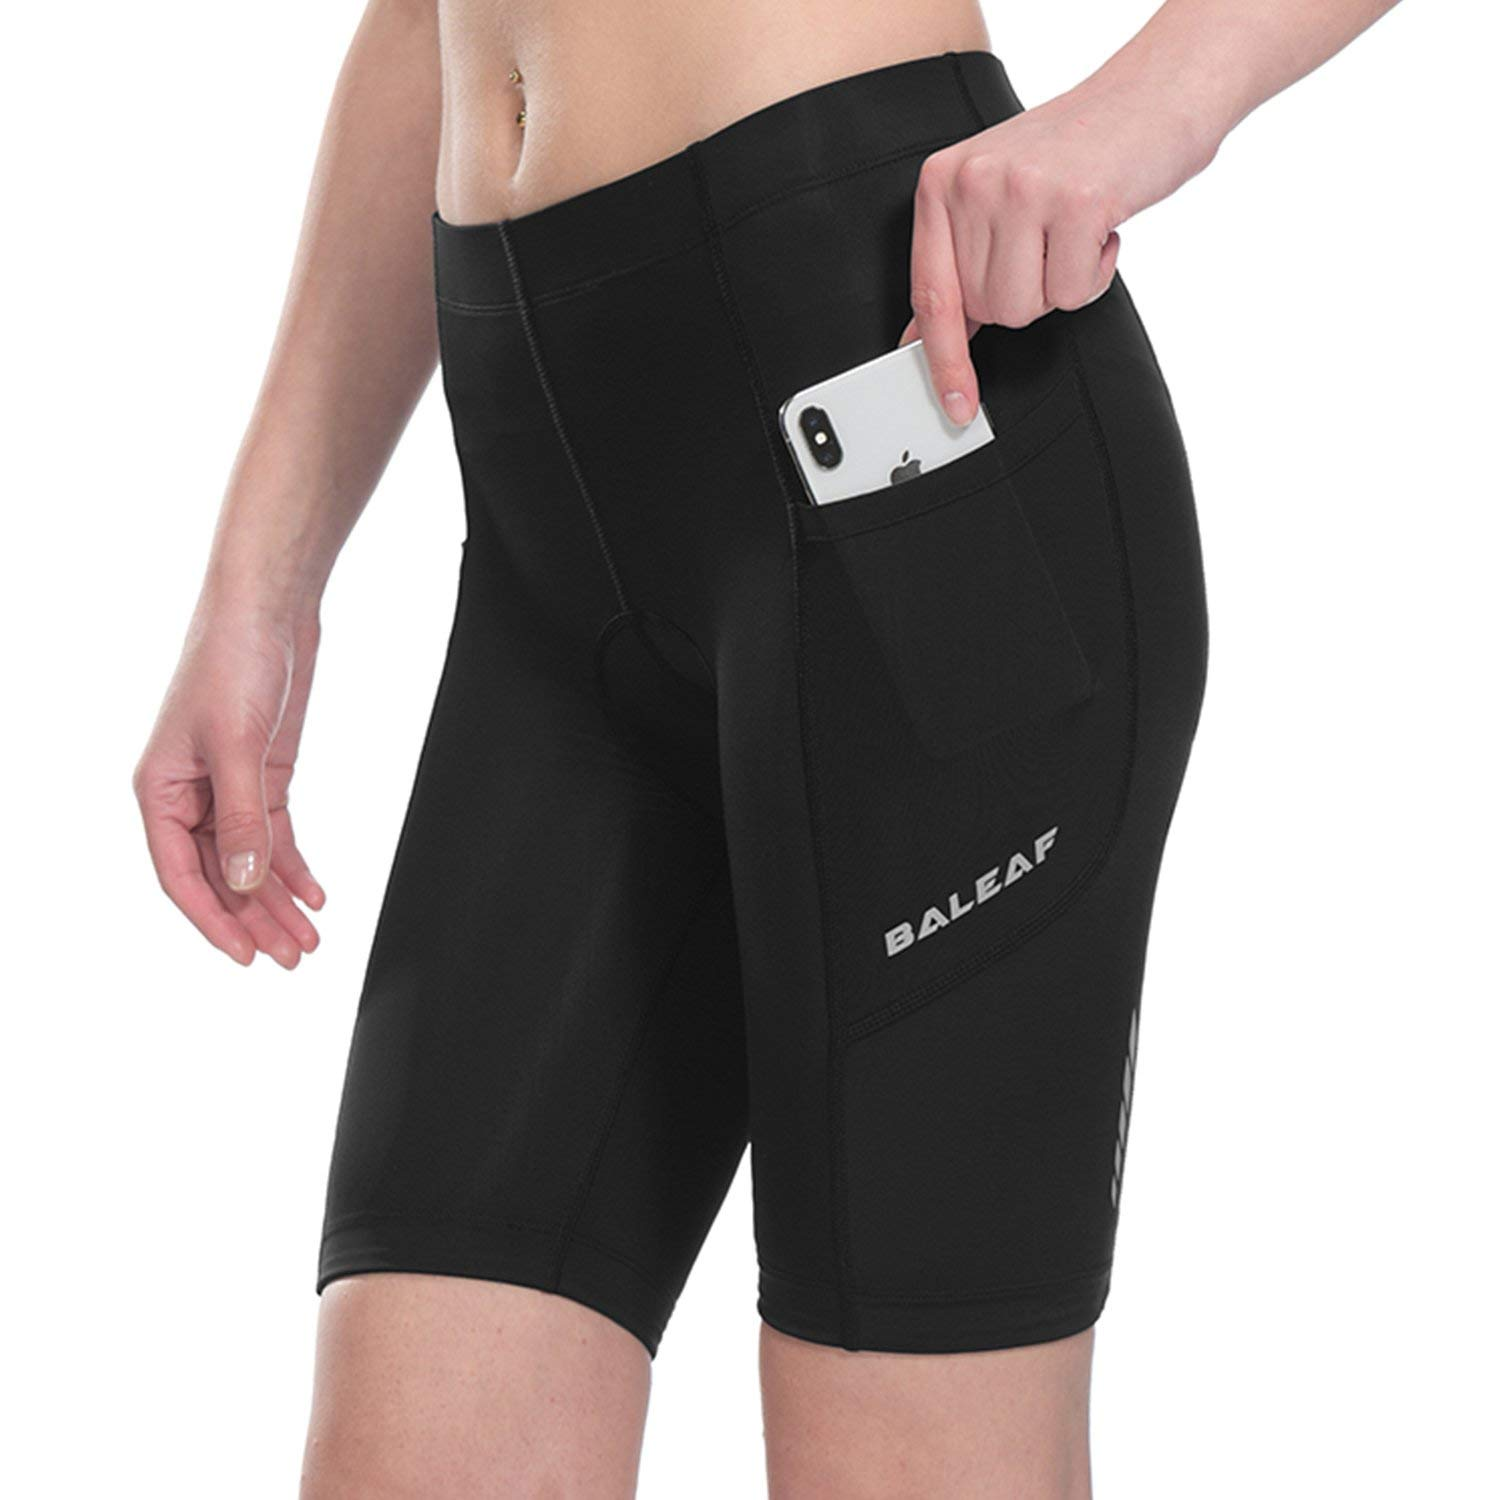 Baleaf Women's Cycling 3D Padded Shorts Side Pocket UPF 50+ Black Size XS by Baleaf